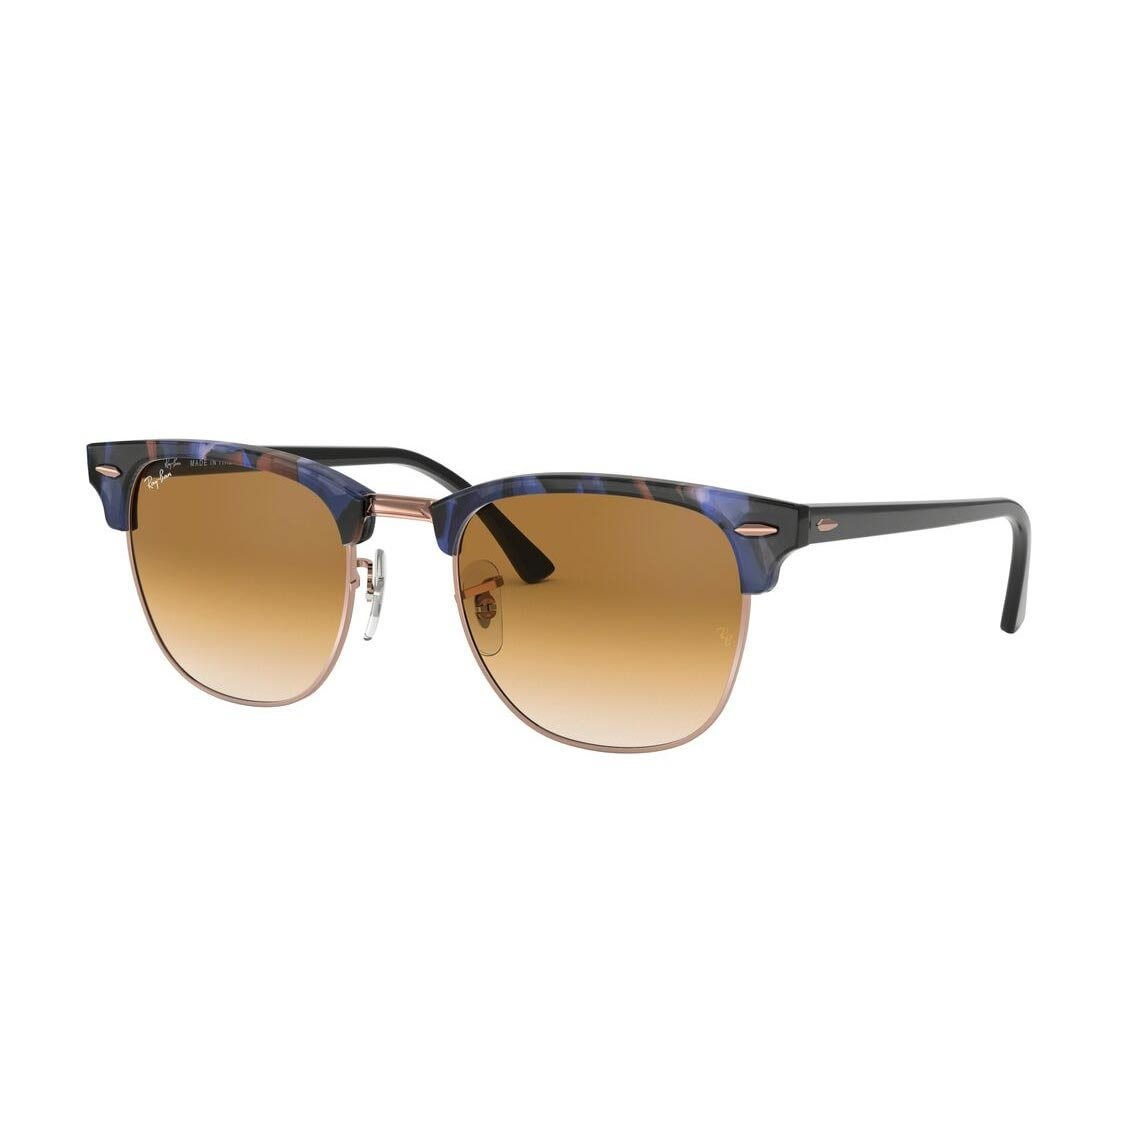 Ray-Ban Clubmaster Fleck  RB3016 125651 4921